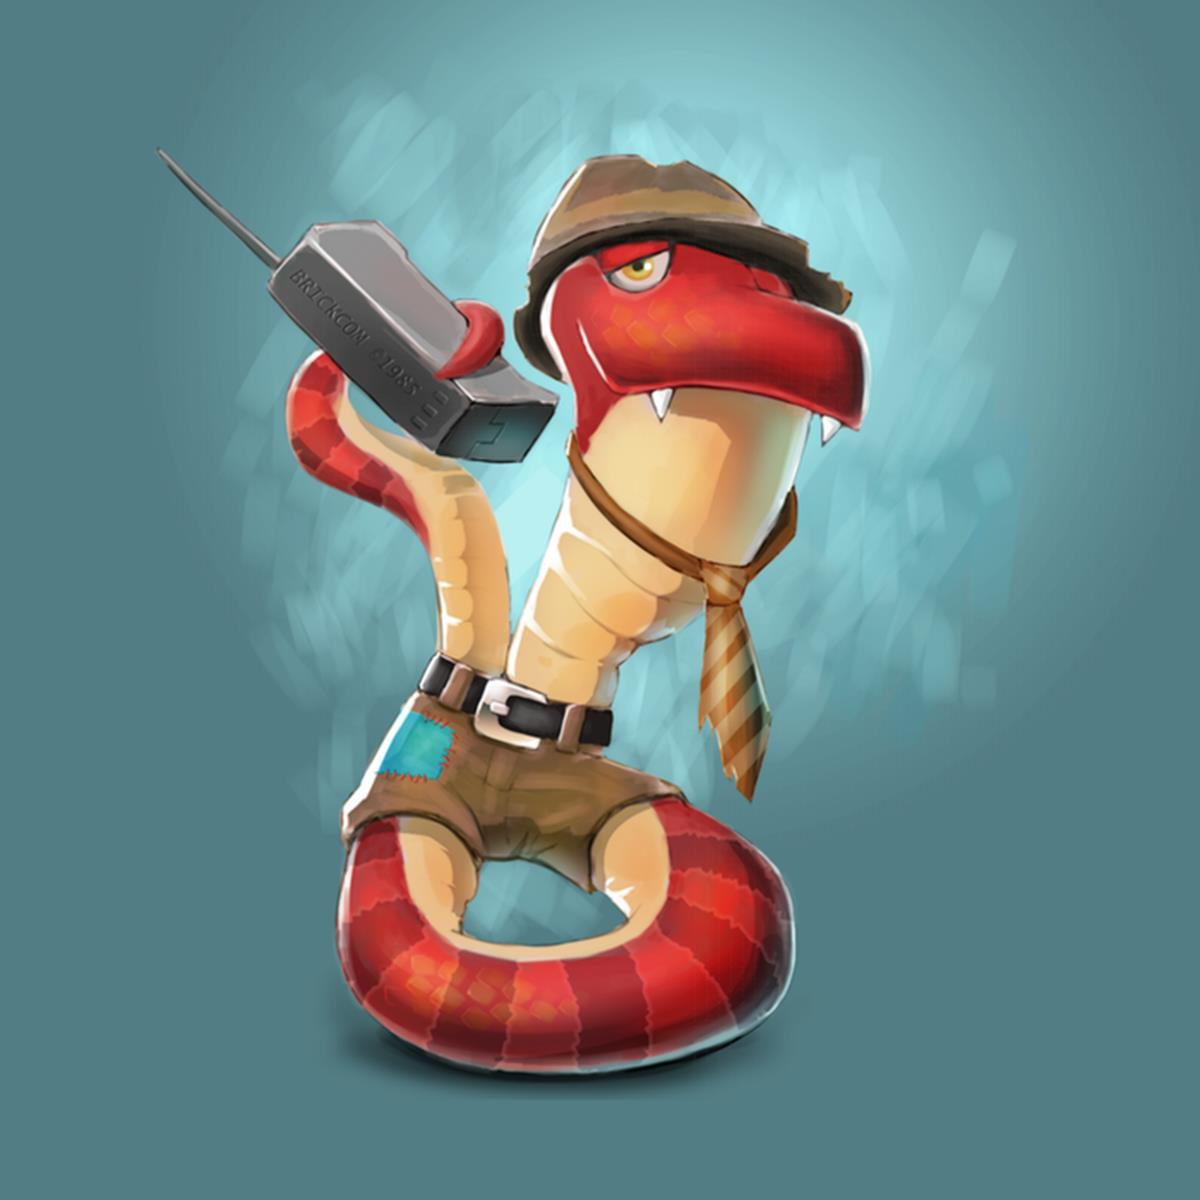 Pubg Phone Wallpaper Banjo Kazooie Successor Gets New Character That Is A Snake